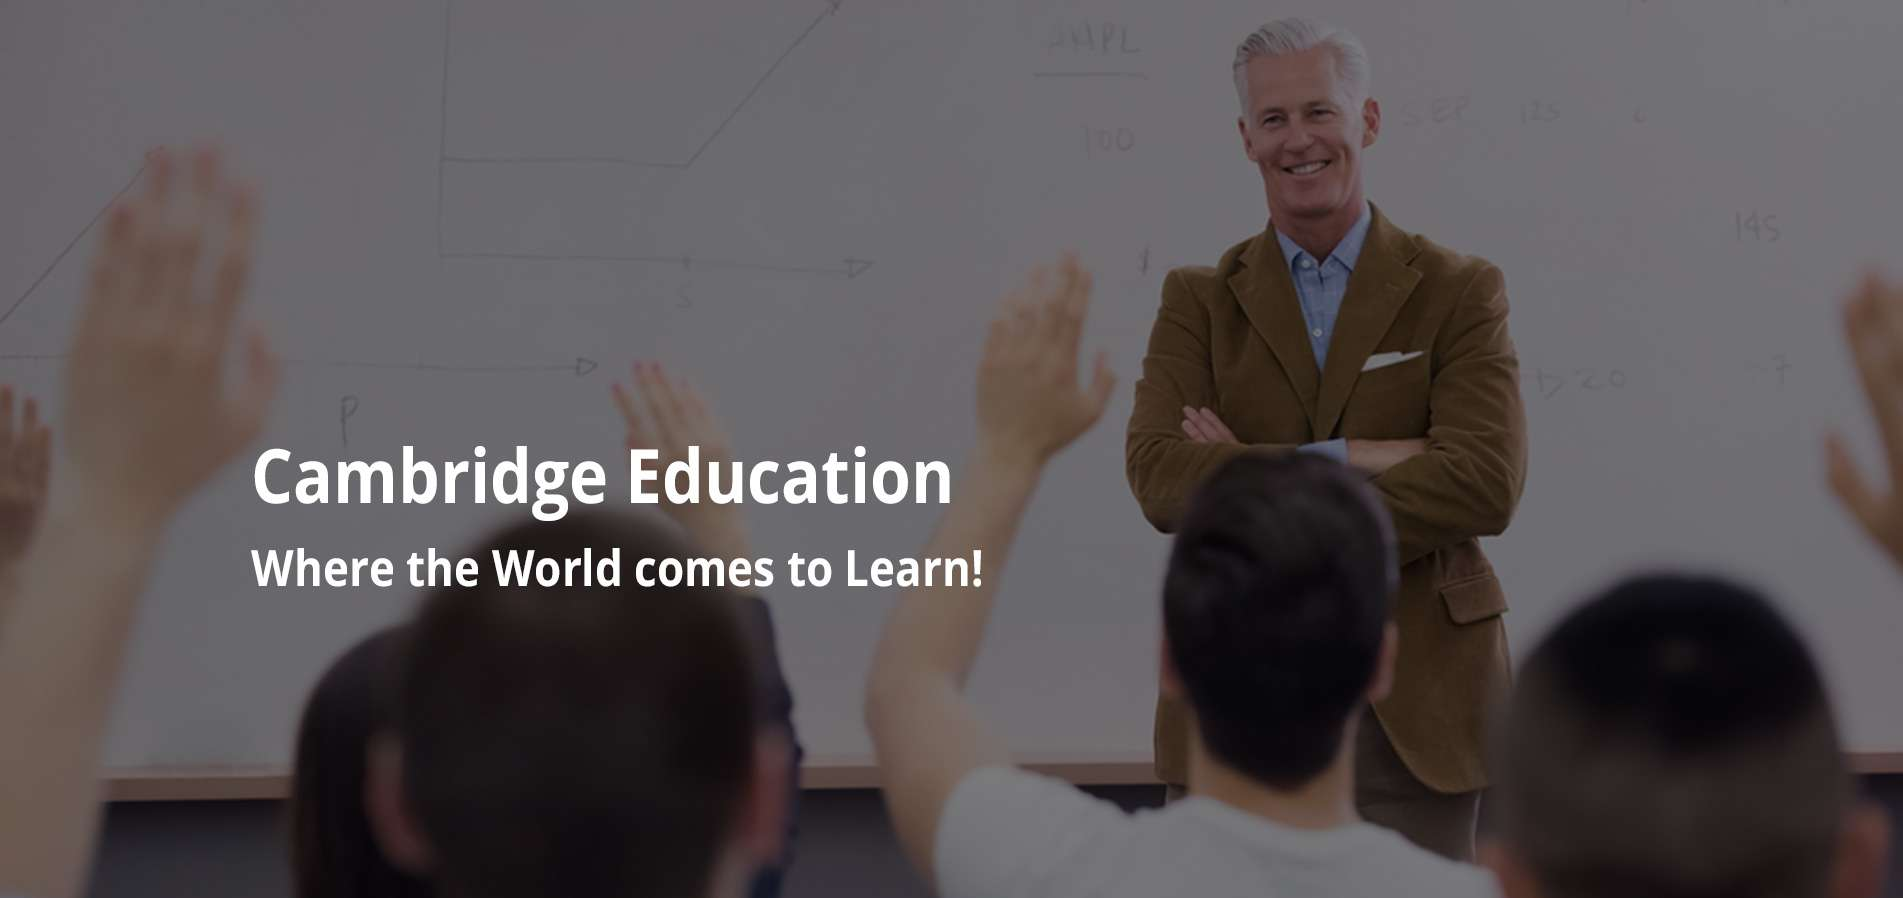 cambridge-education-where-the-world-comes-to-learns